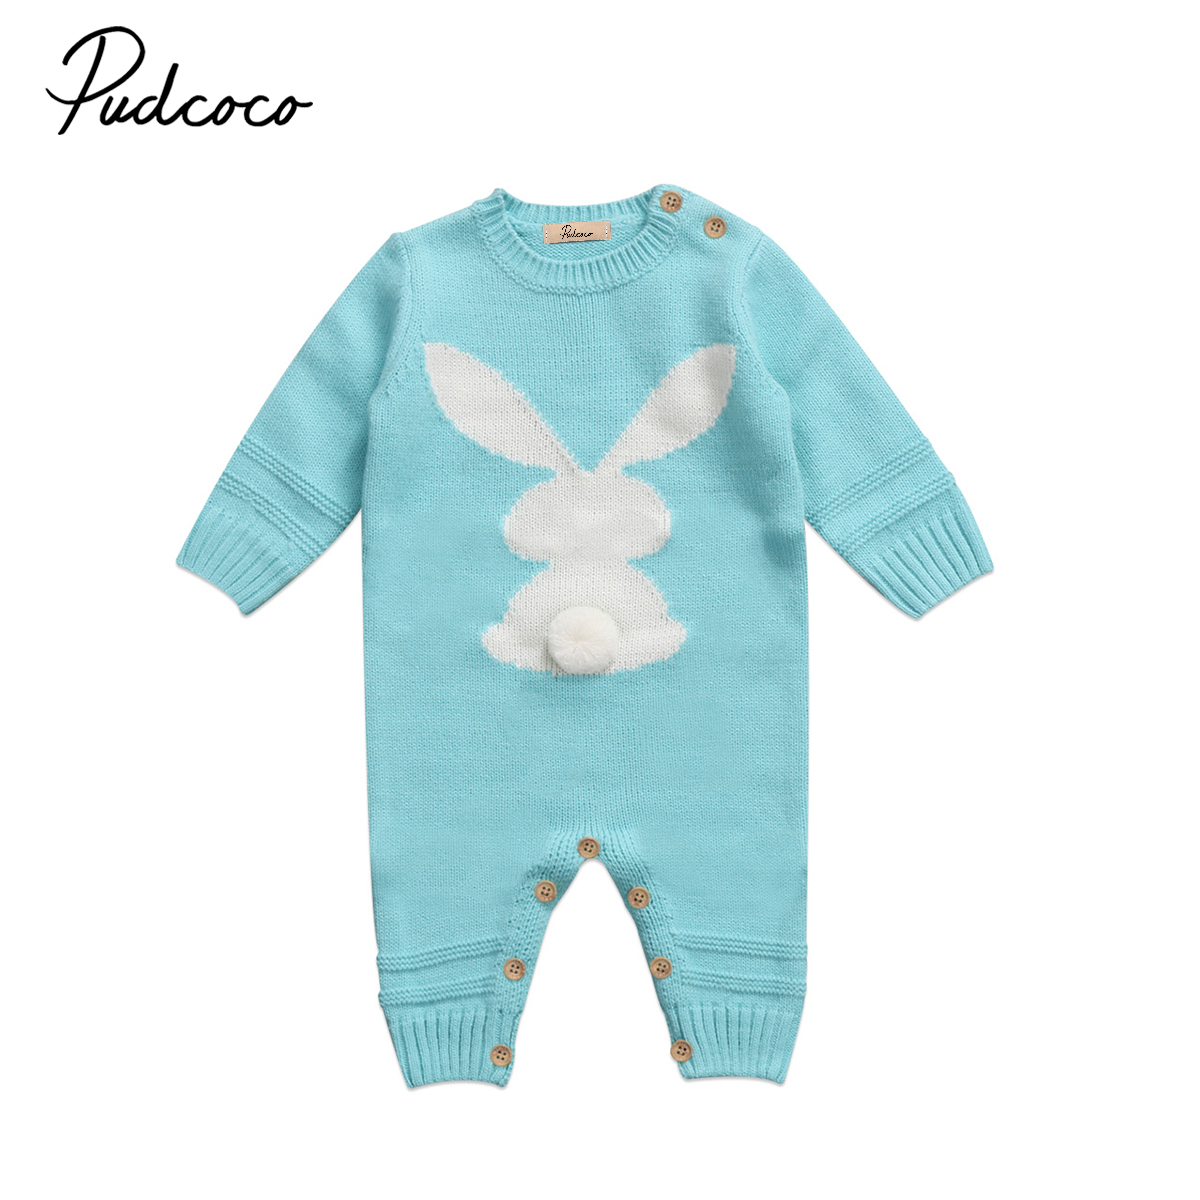 2017 Brand New Newborn Toddler Infant Baby Boy Girl Cartoon Rabbit Warm Knitting Romper Jumpsuit Outfit Casual Clothes кольца divetro кольца экспрессия